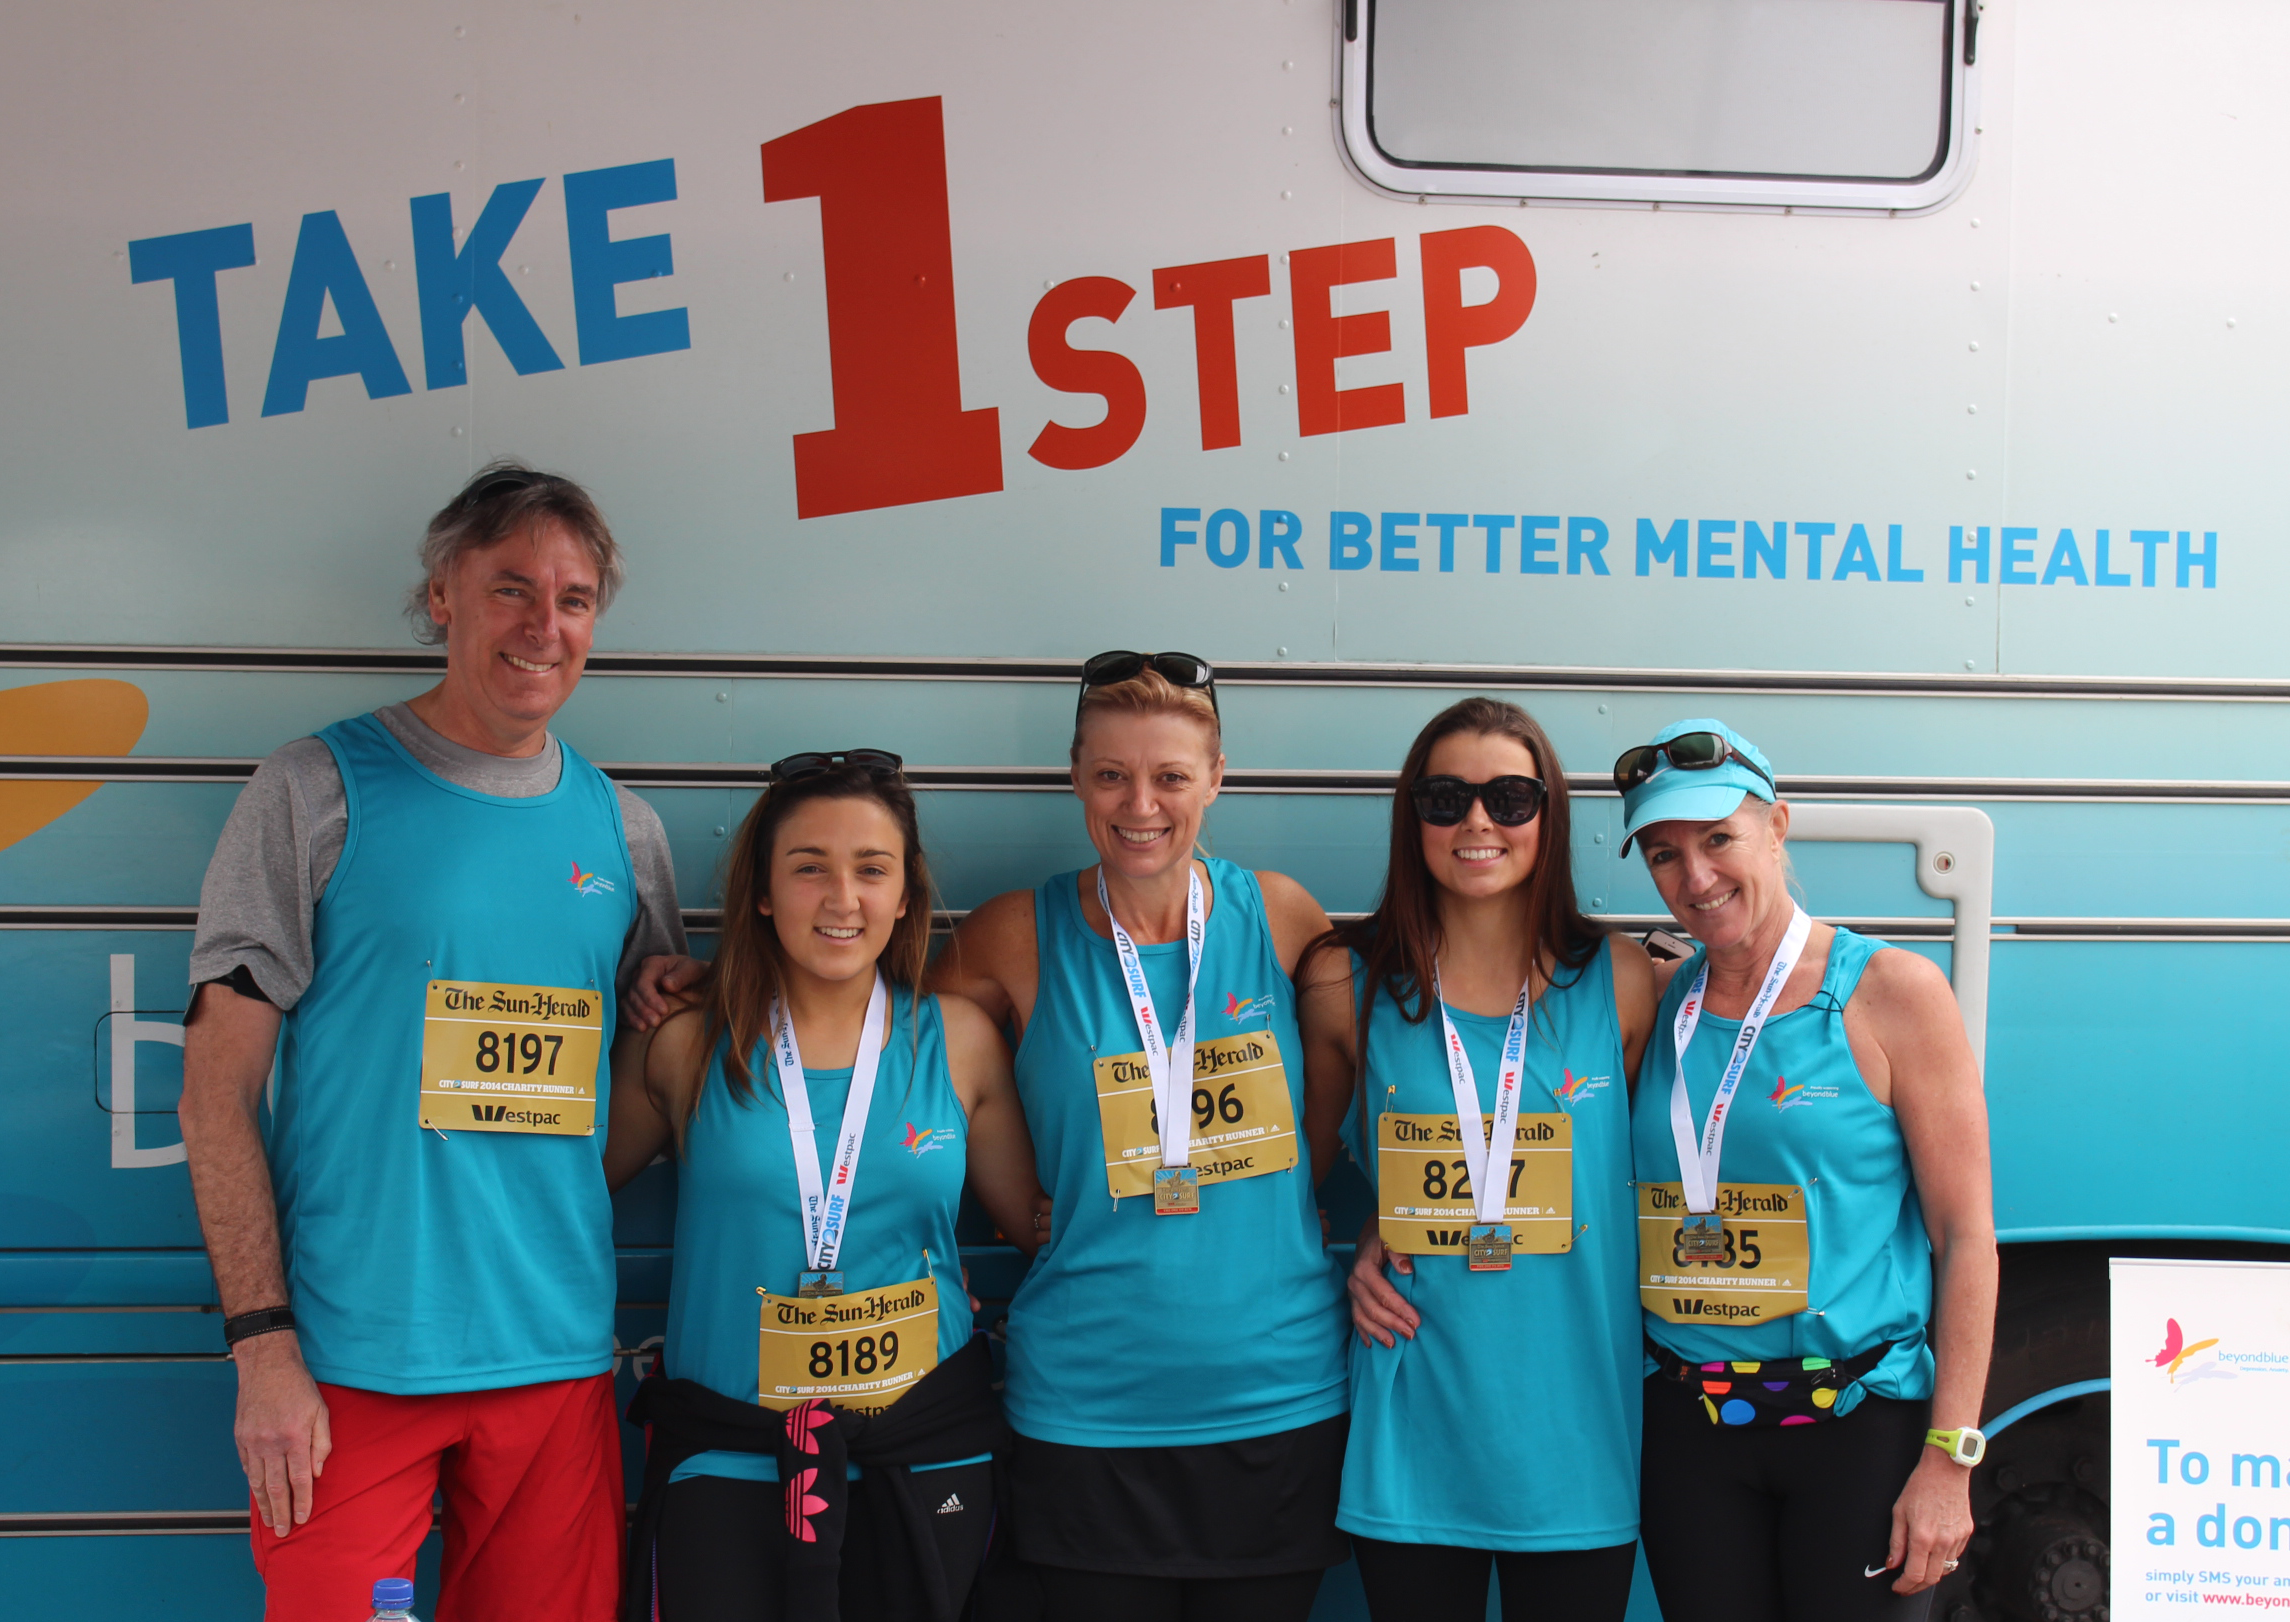 Some members of 'Team Karen for Beyond Blue in honour of Nick and Ayden' who raised over $26,000 at City2Surf: NSW.